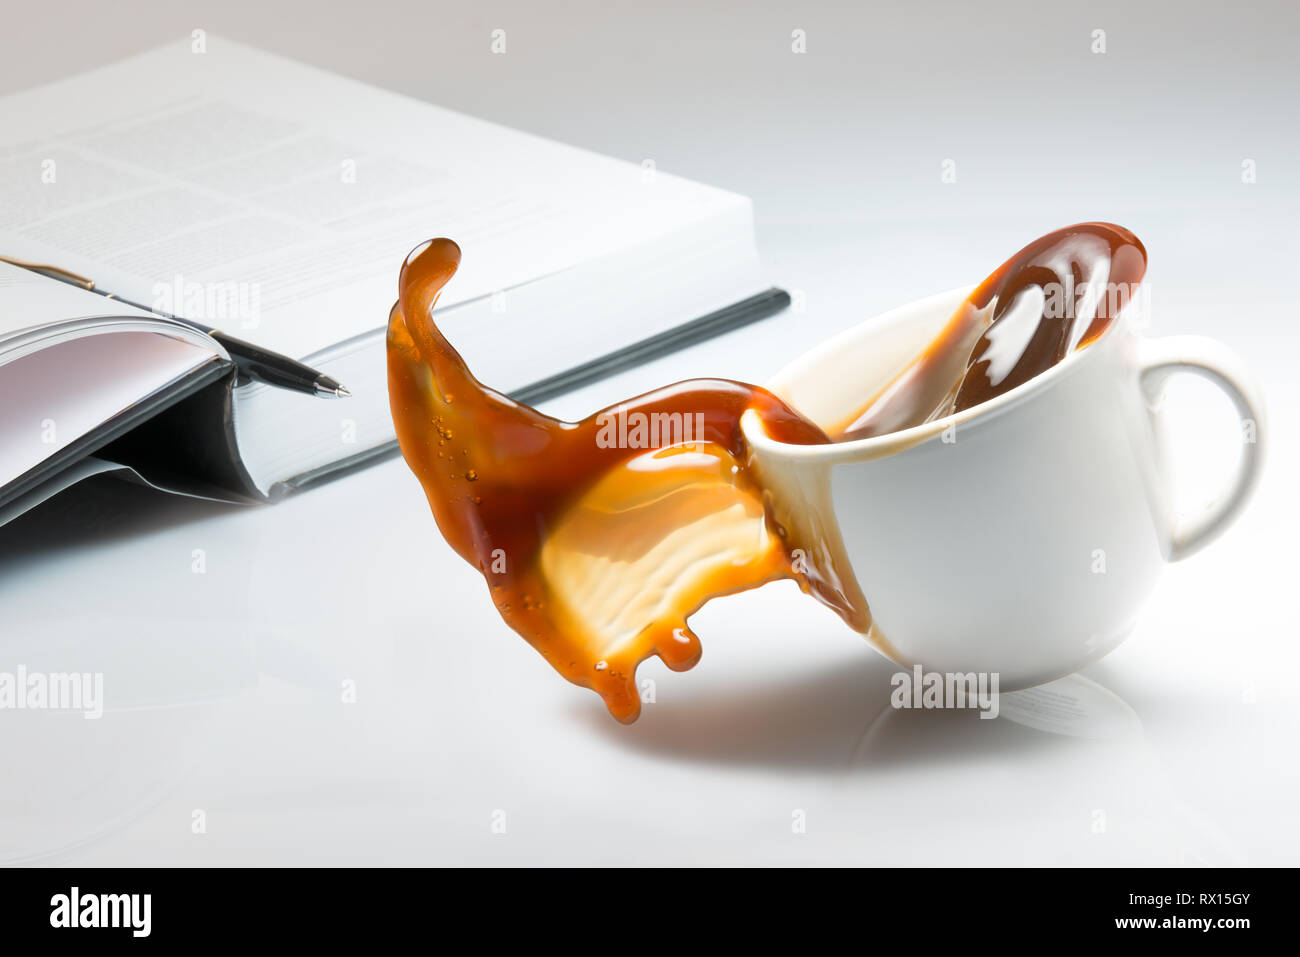 Falling and spilling of a cup of coffee on top of a desk with an open book - Stock Image